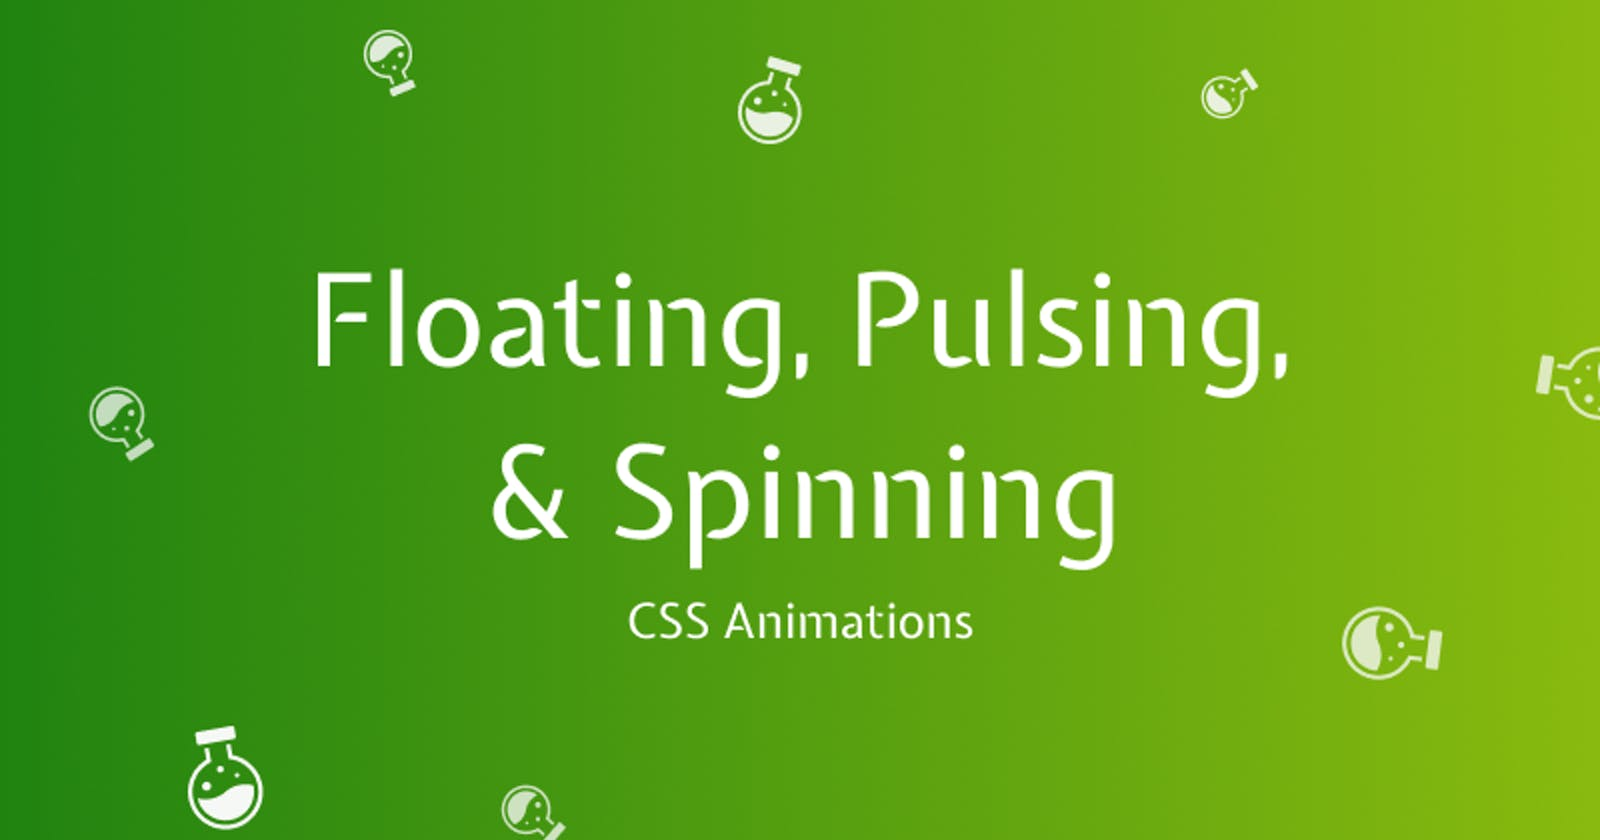 Floating, Pulsing, and Spinning CSS Animations